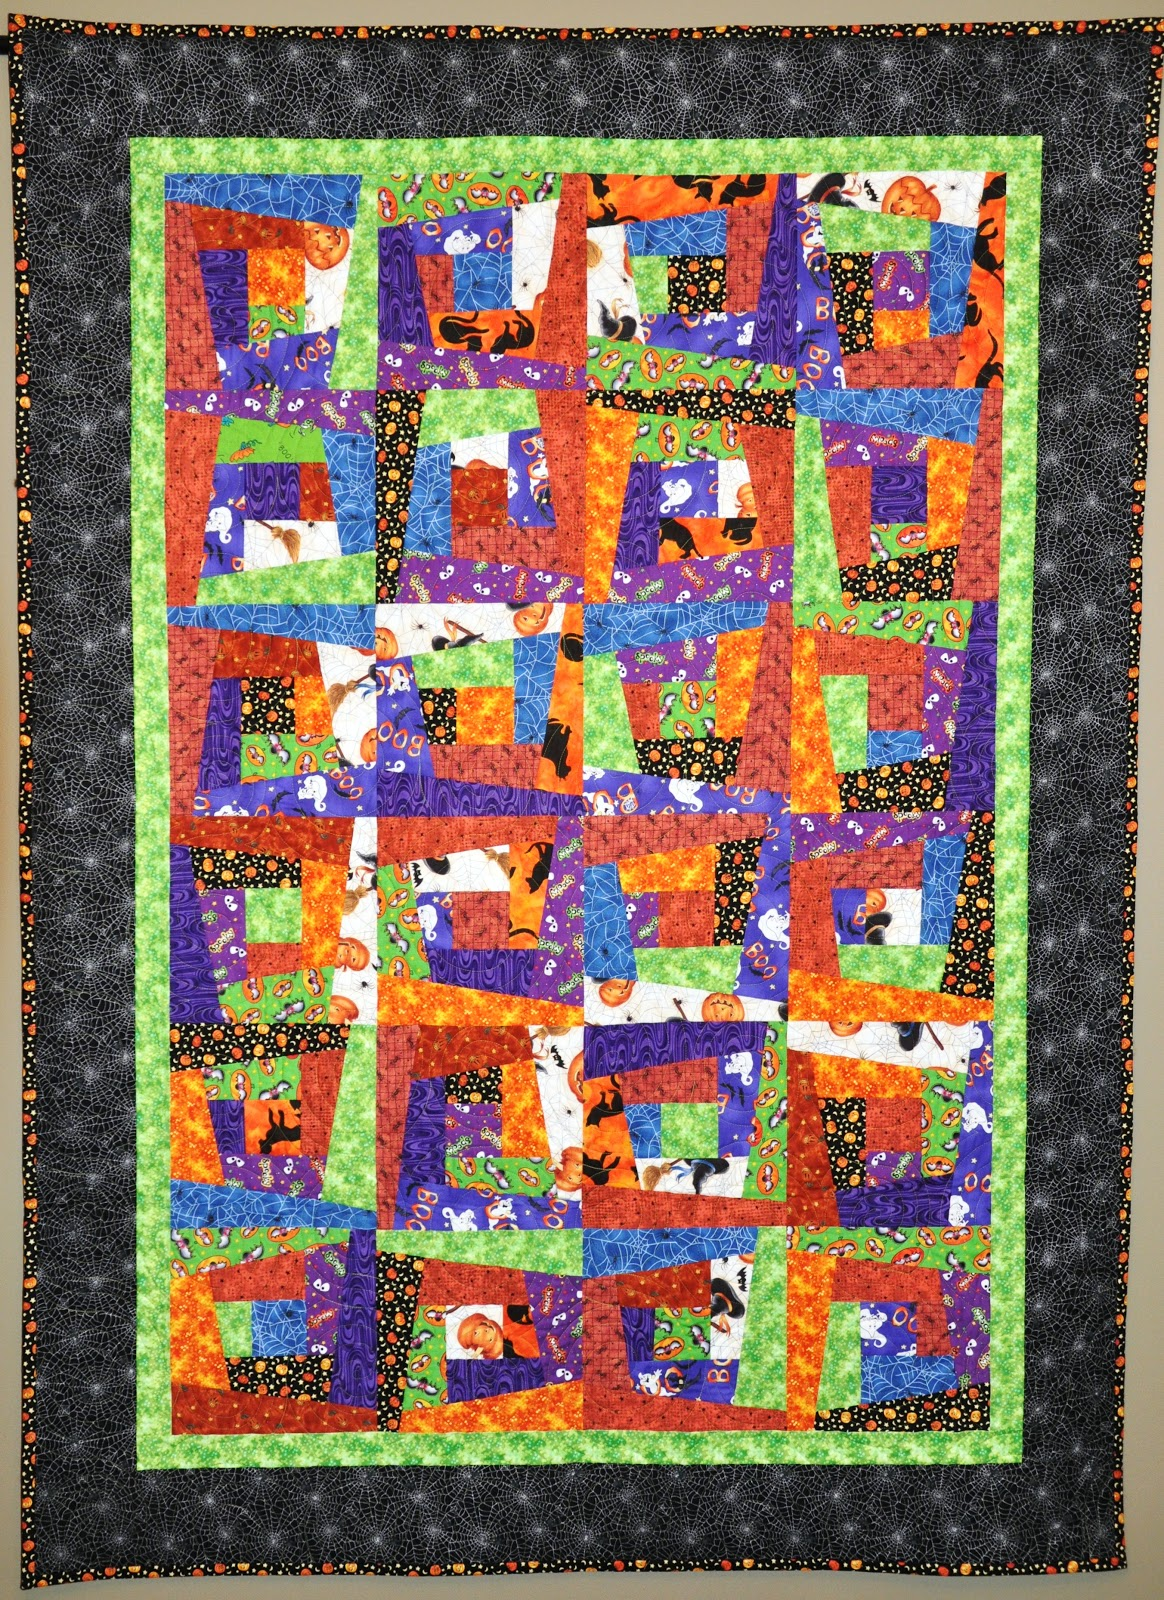 Silver Thimble Quilting: Finished Quilts